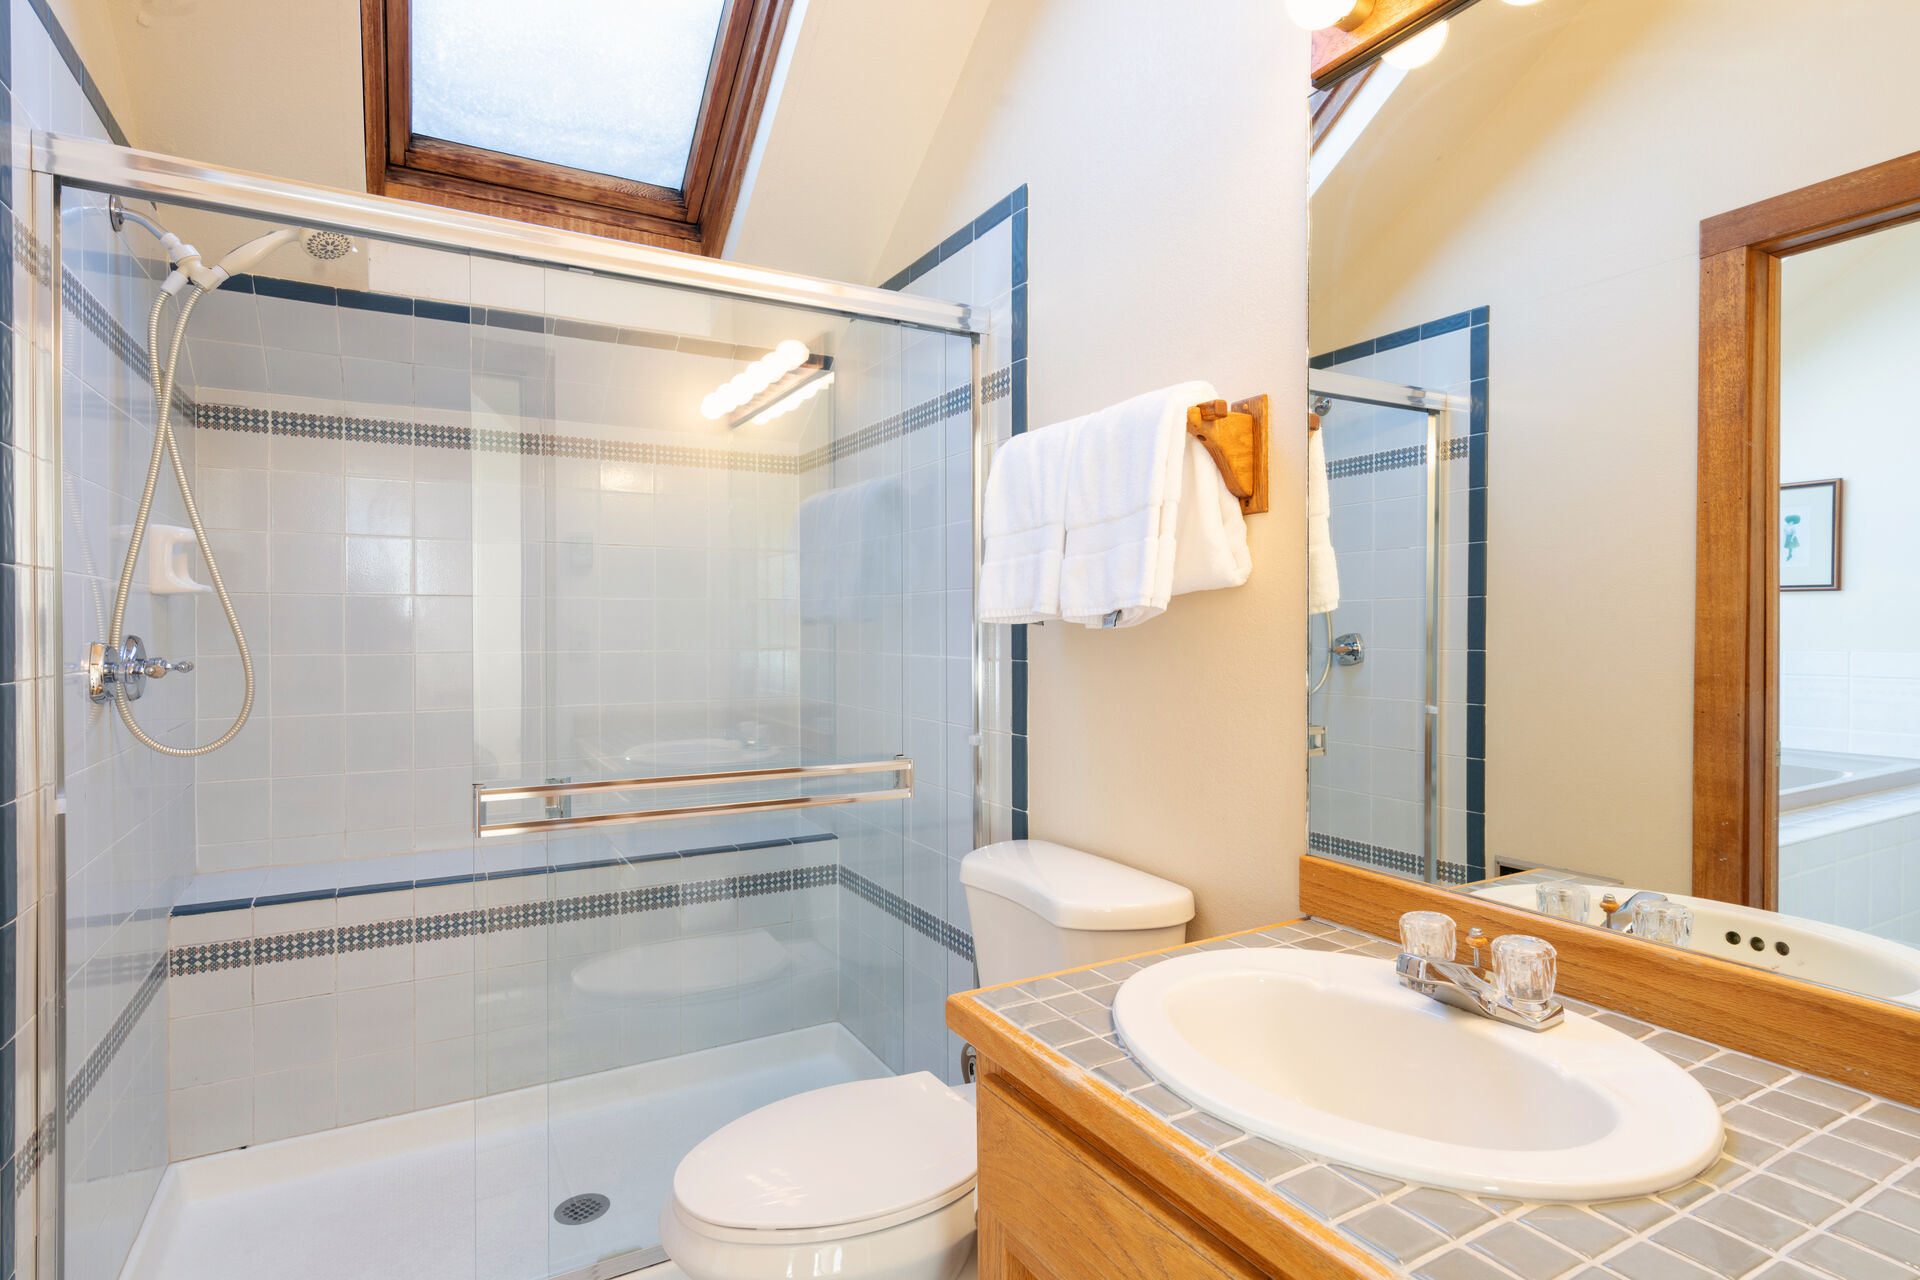 Spacious Shower, toilet and sink